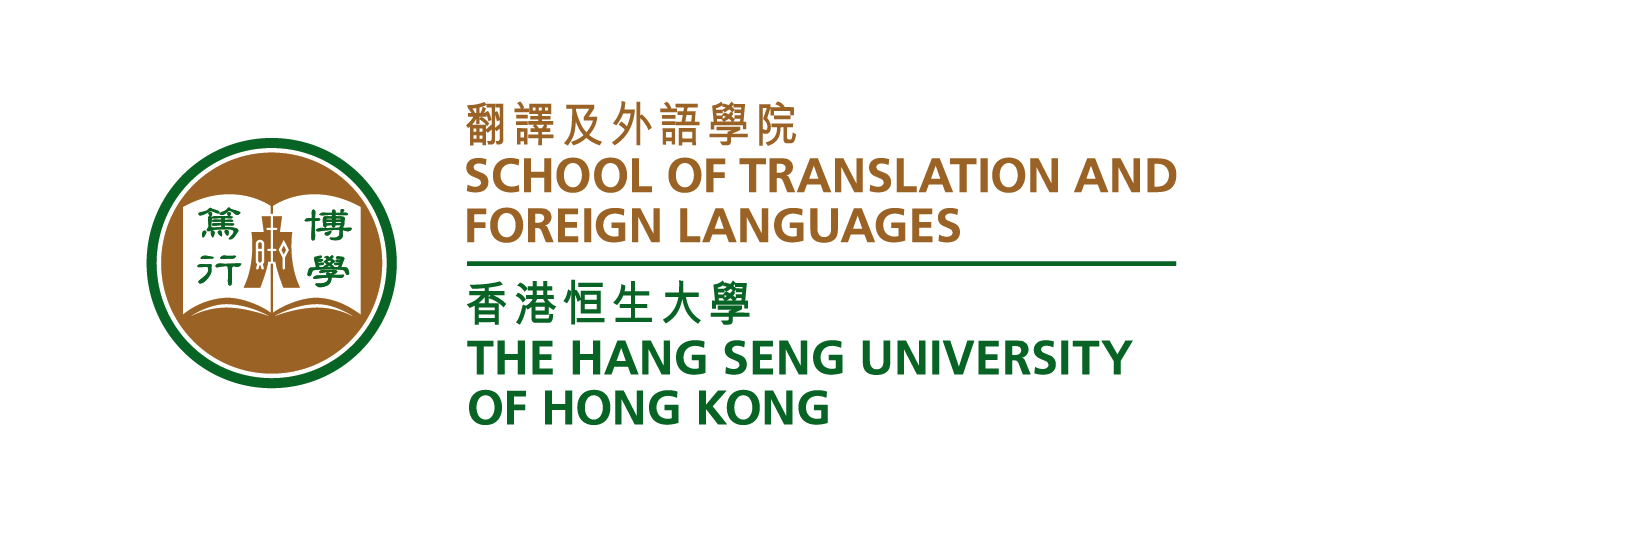 School of Translation, HSUHK